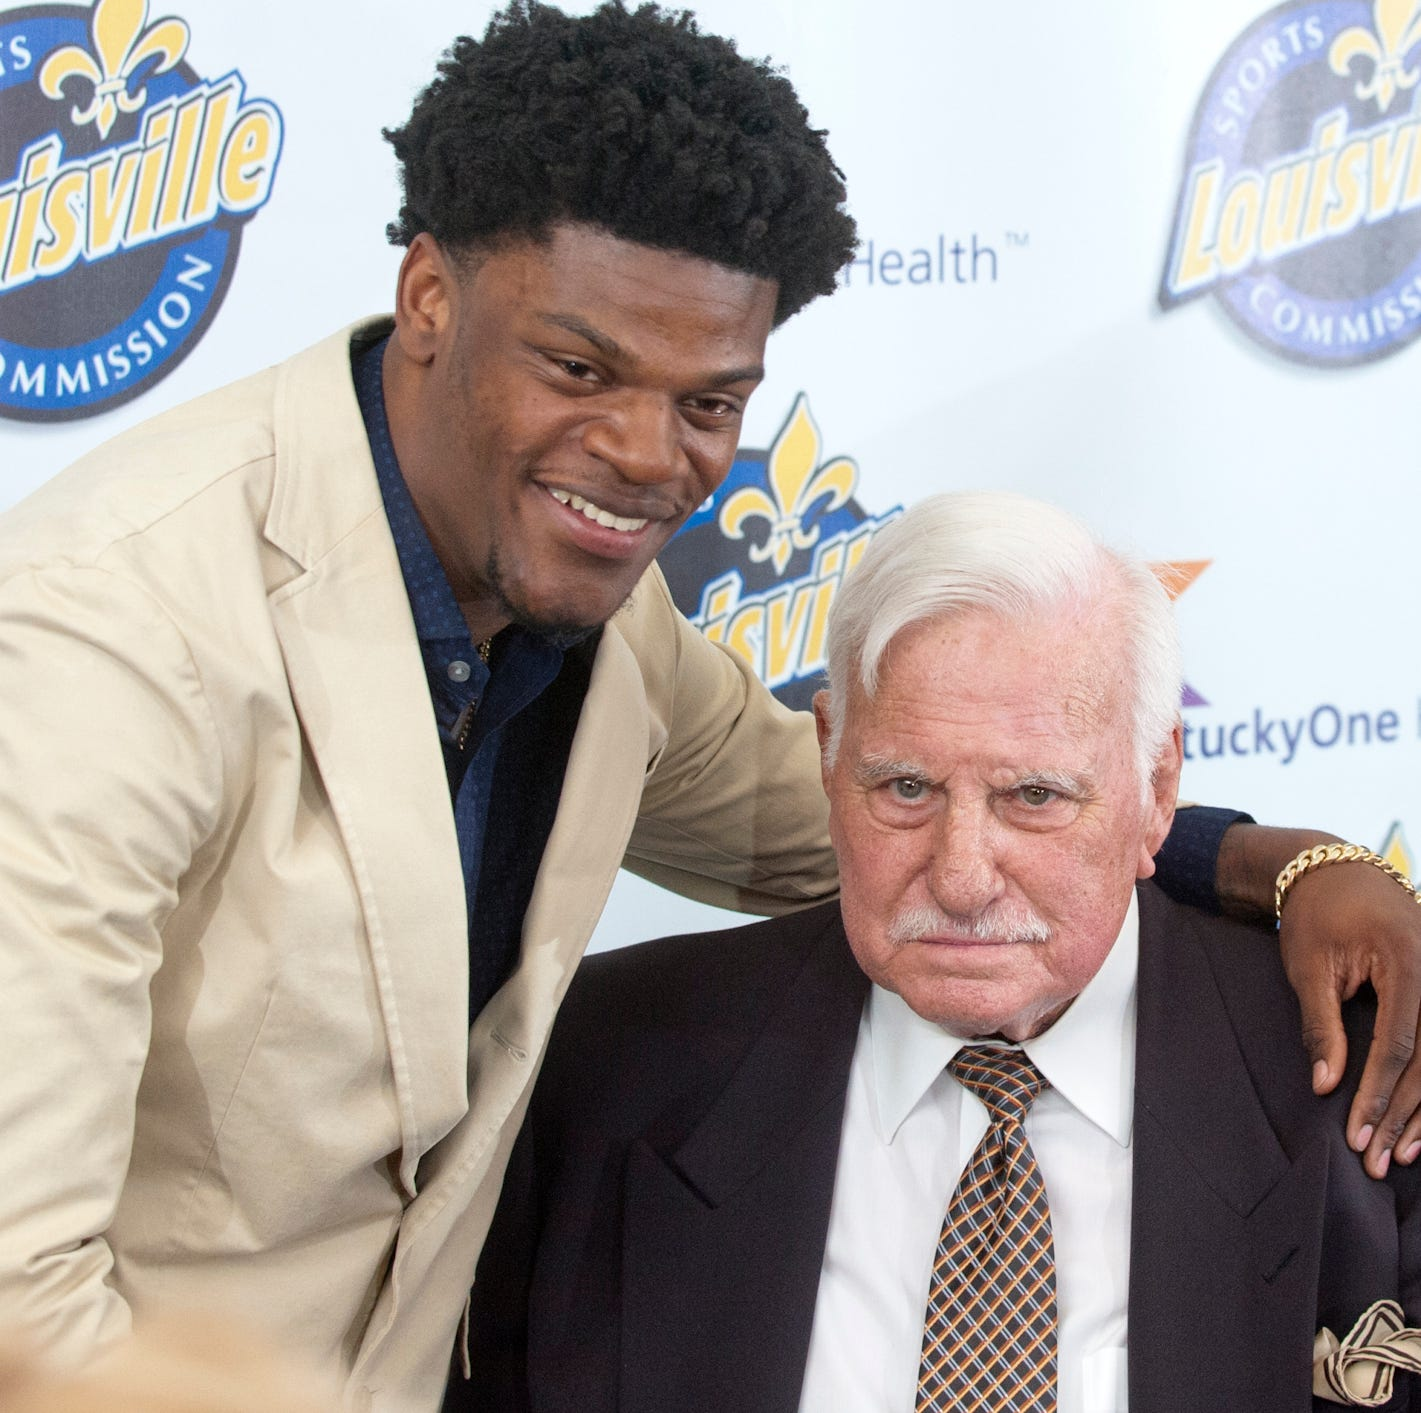 Lamar Jackson 'just came to show love to Louisville' in surprise visit